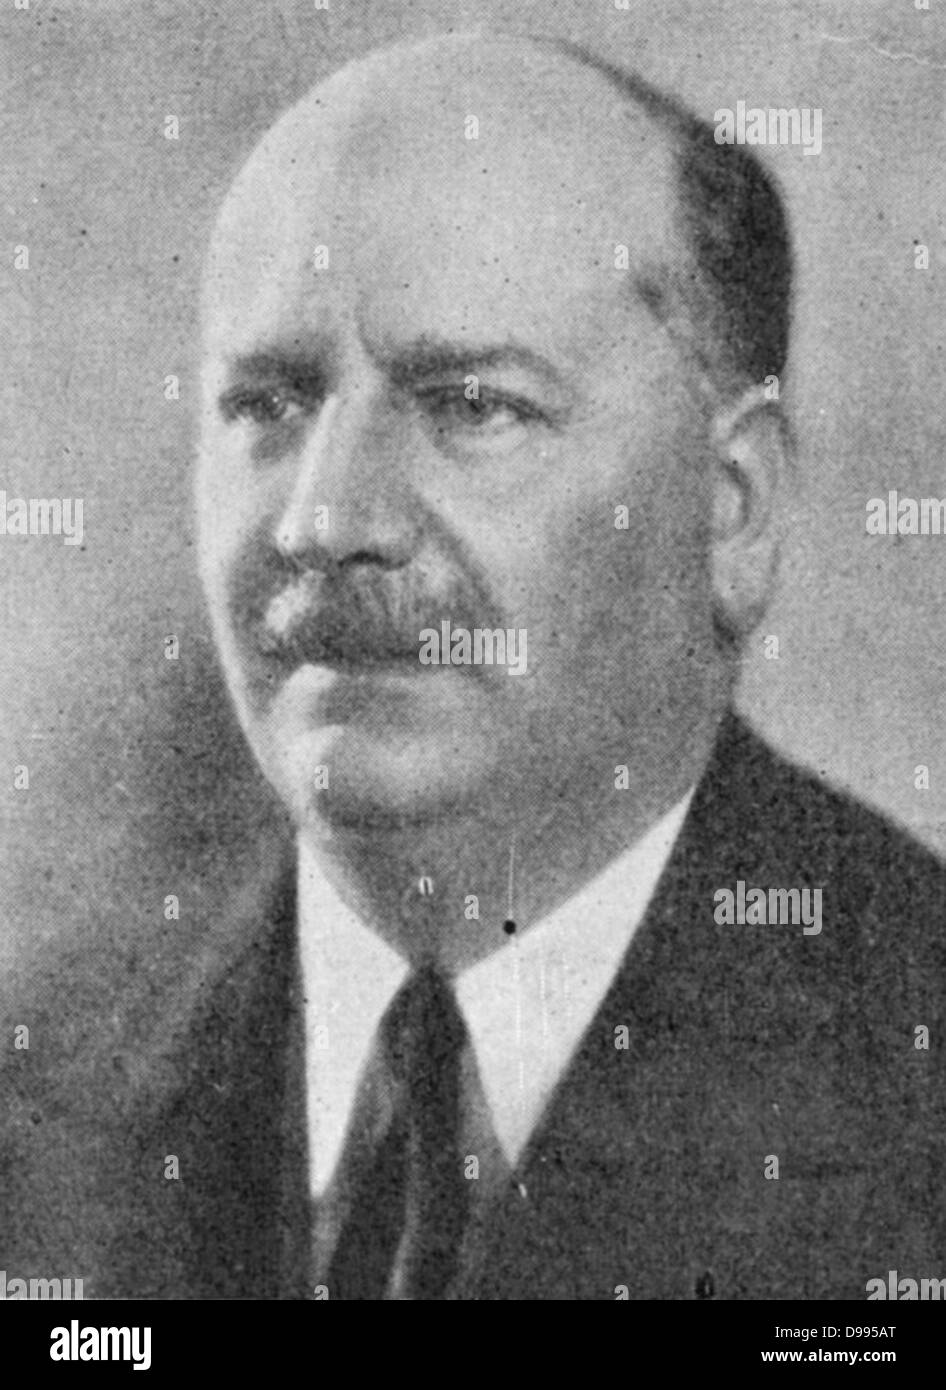 Pierre Etienne Flandin (1889-1958) French conservative politician and leader of the Democratic Republican Alliance - Stock Image